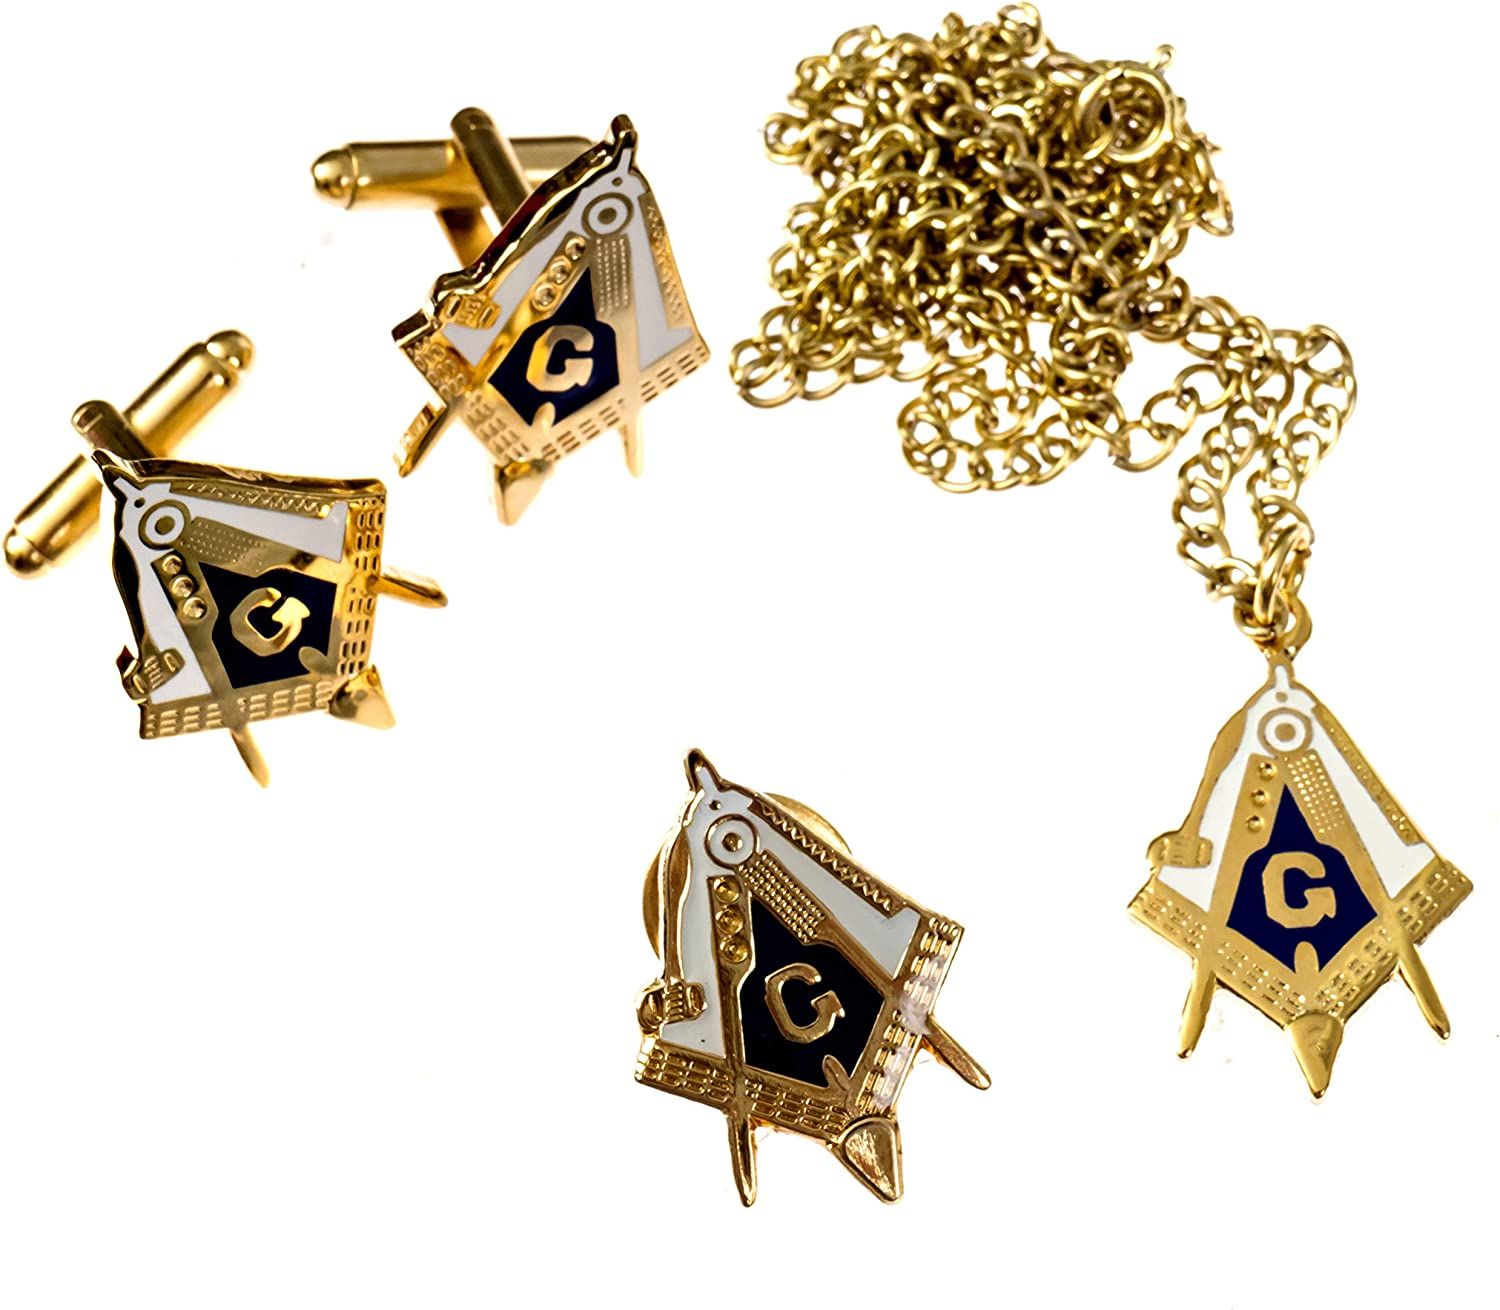 Working Tools Square & Compass Lapel Pin Cufflink Necklace Masonic Combo Pack